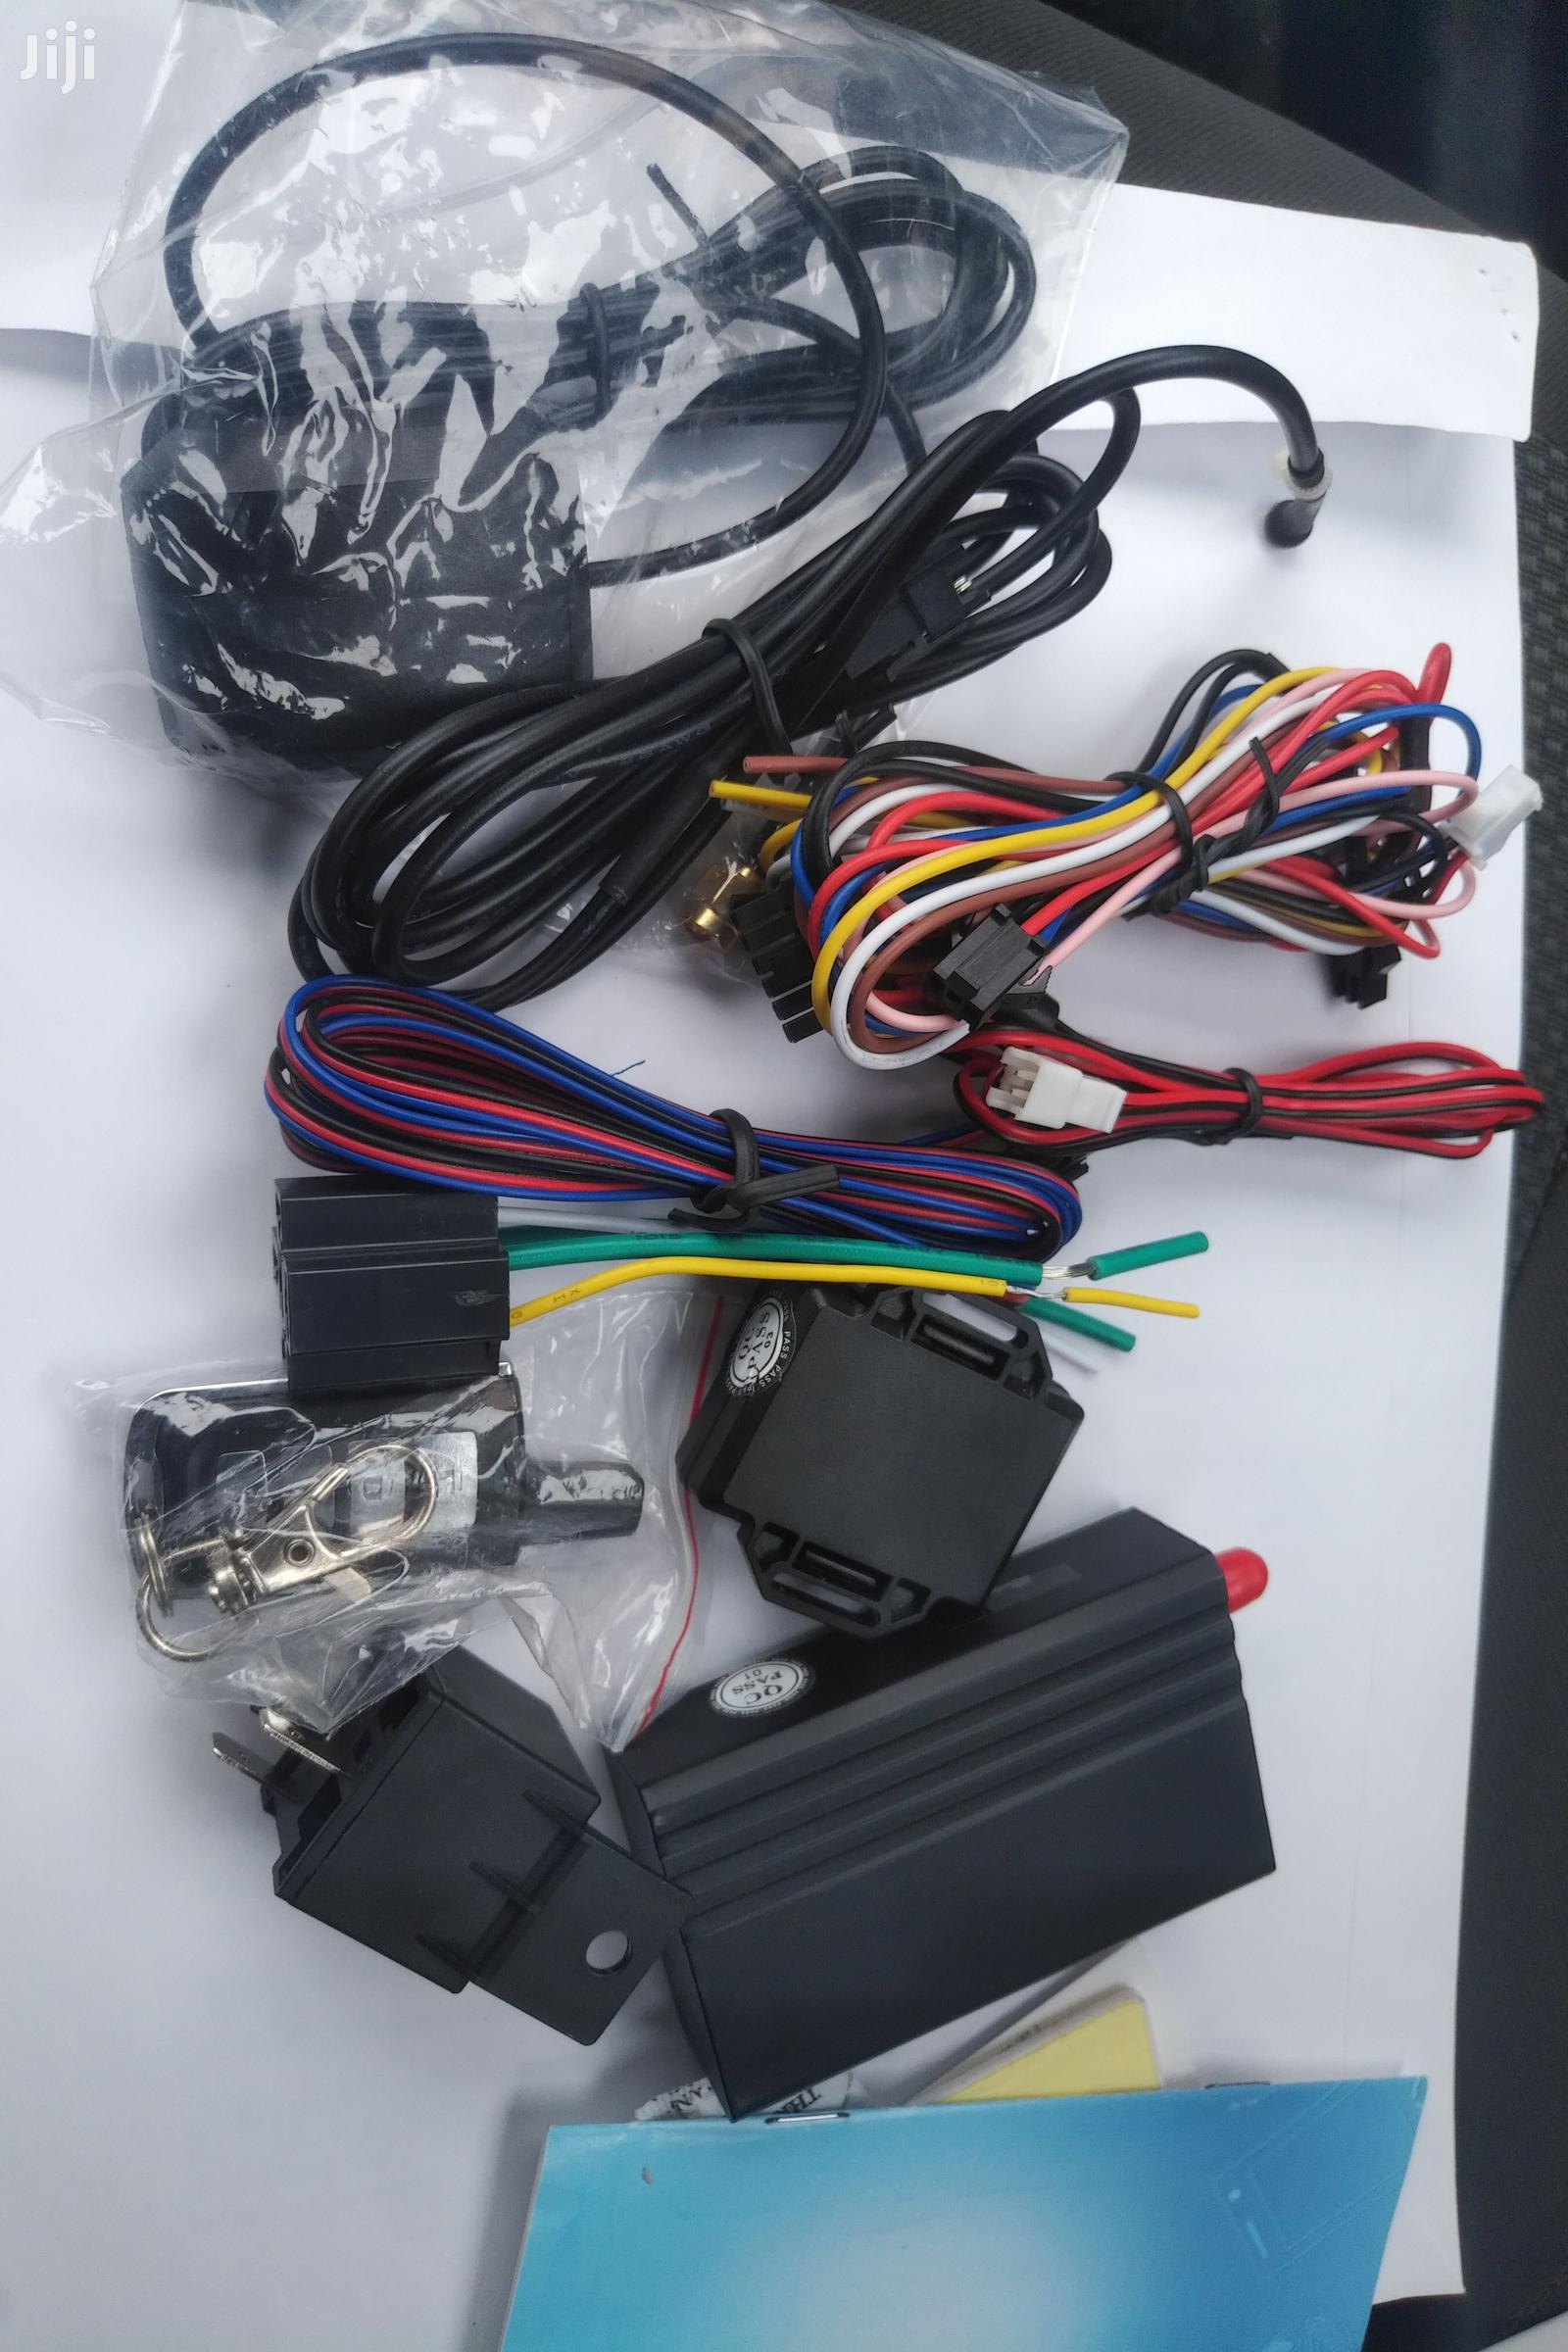 Car Alarm With GPS Tracking | Vehicle Parts & Accessories for sale in Accra Metropolitan, Greater Accra, Ghana